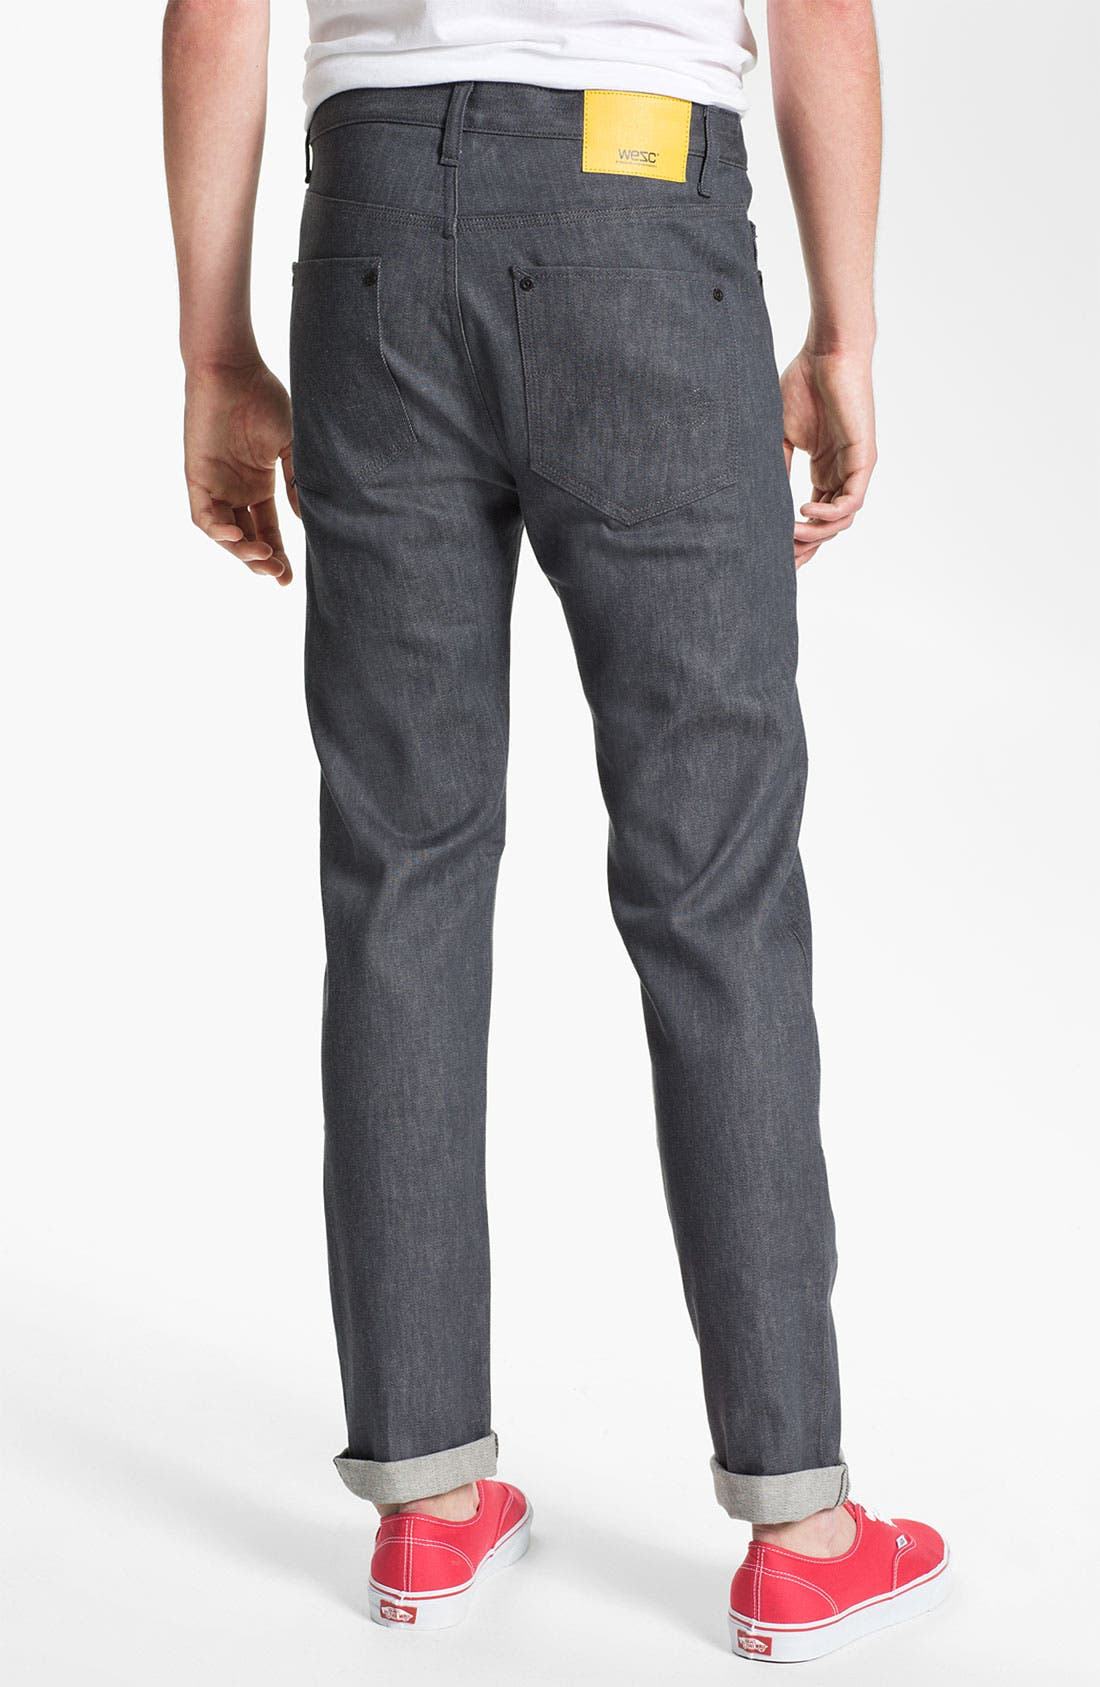 Alternate Image 1 Selected - WeSC 'Eddy' Slim Fit Jeans (Raw Grey)